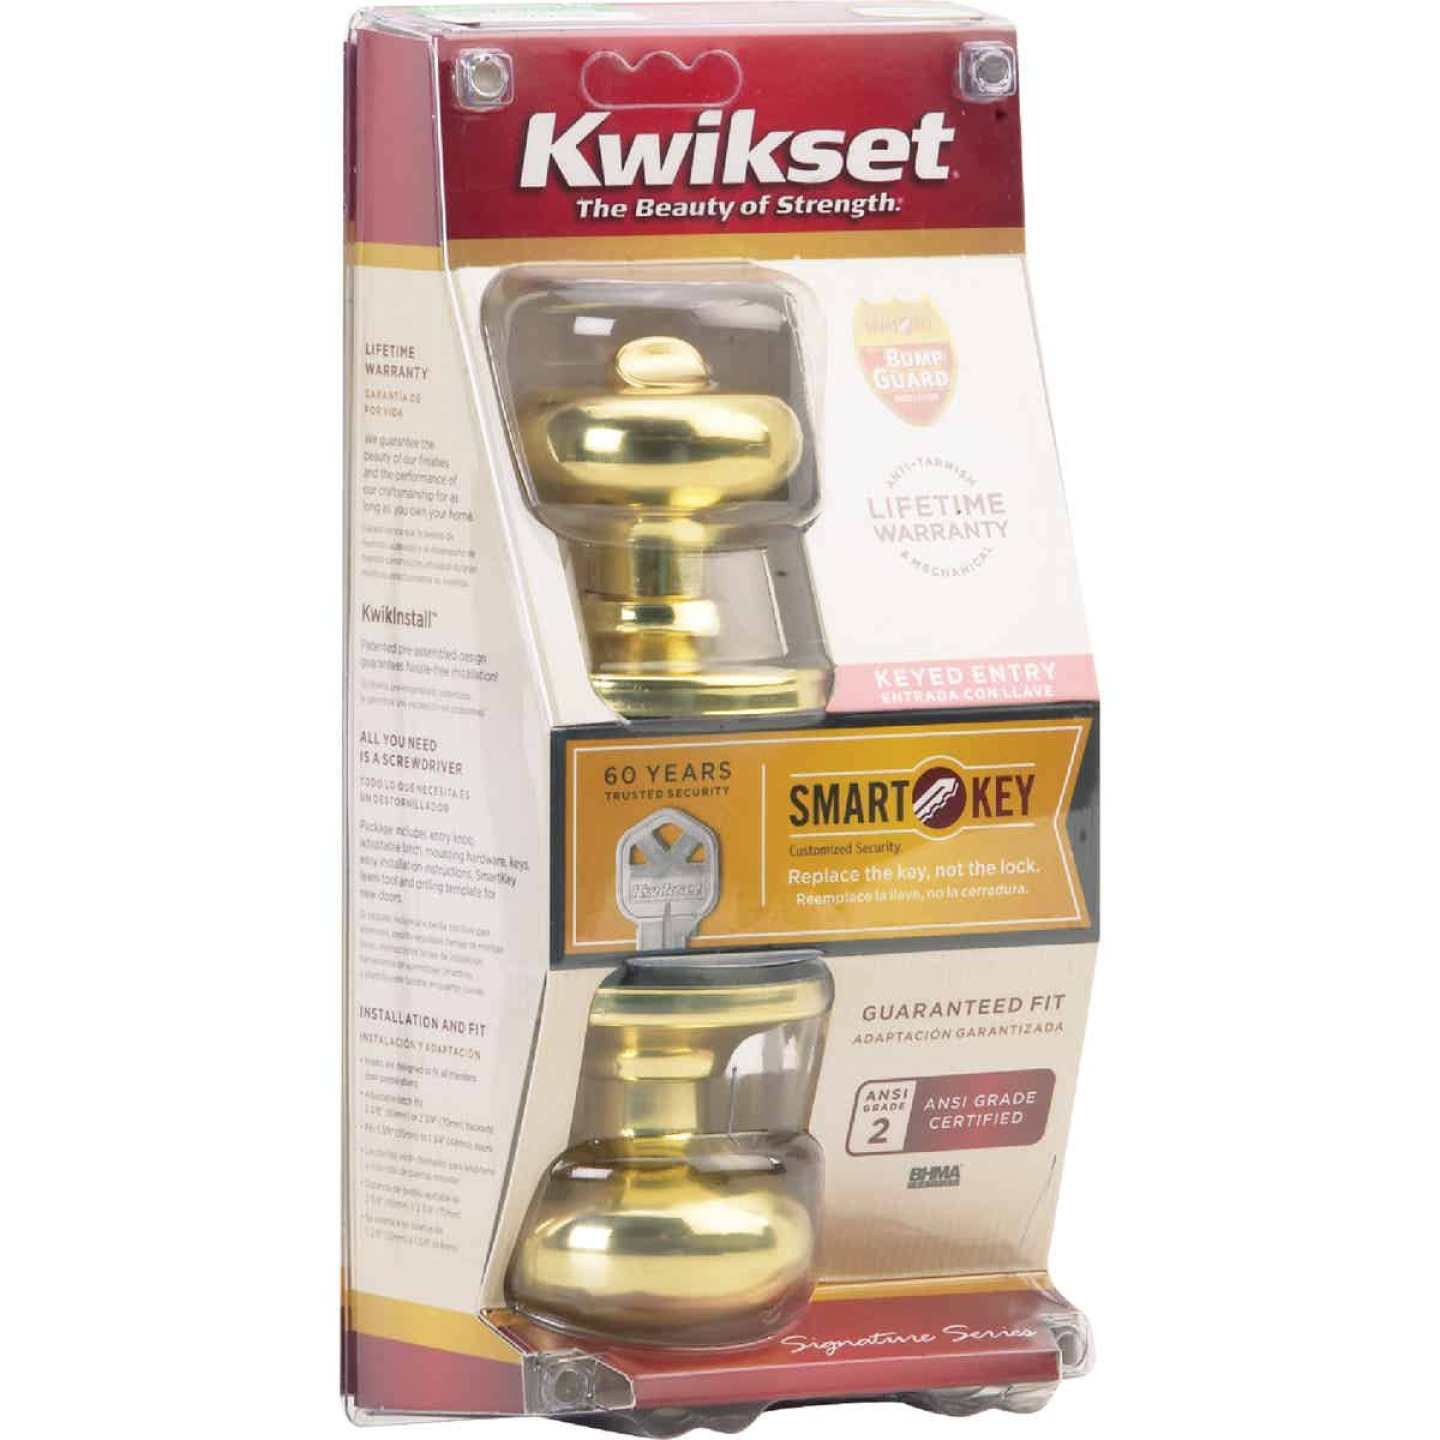 Kwikset Signature Series Polished Brass Juno Entry Door Knob with SmartKey Image 3